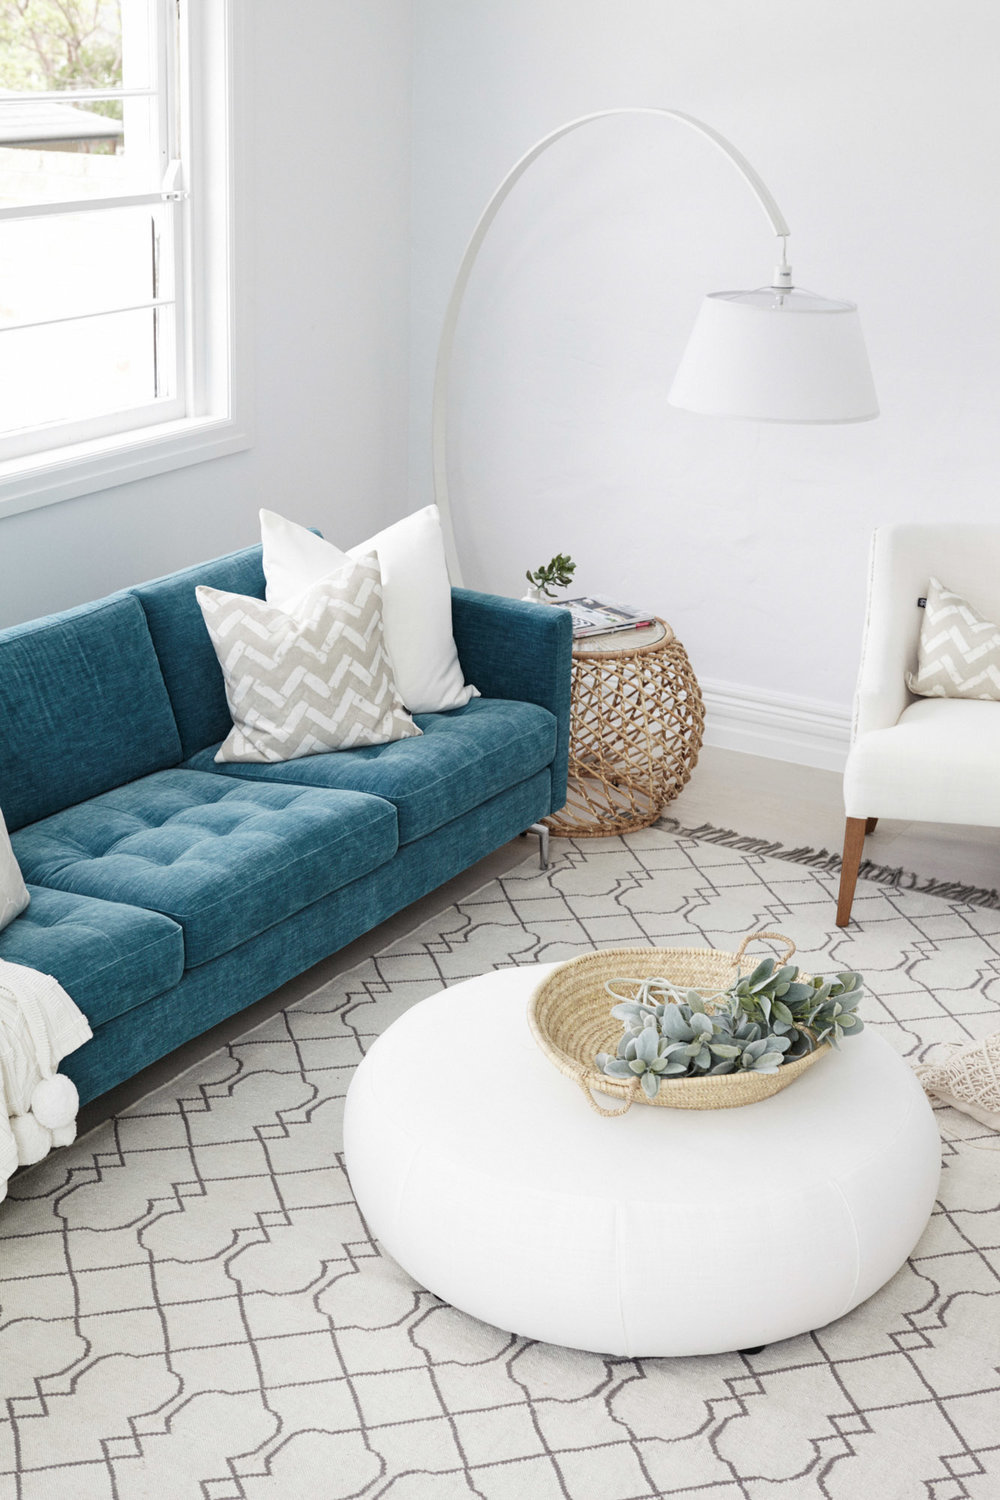 Living room with teal couch and overhang light